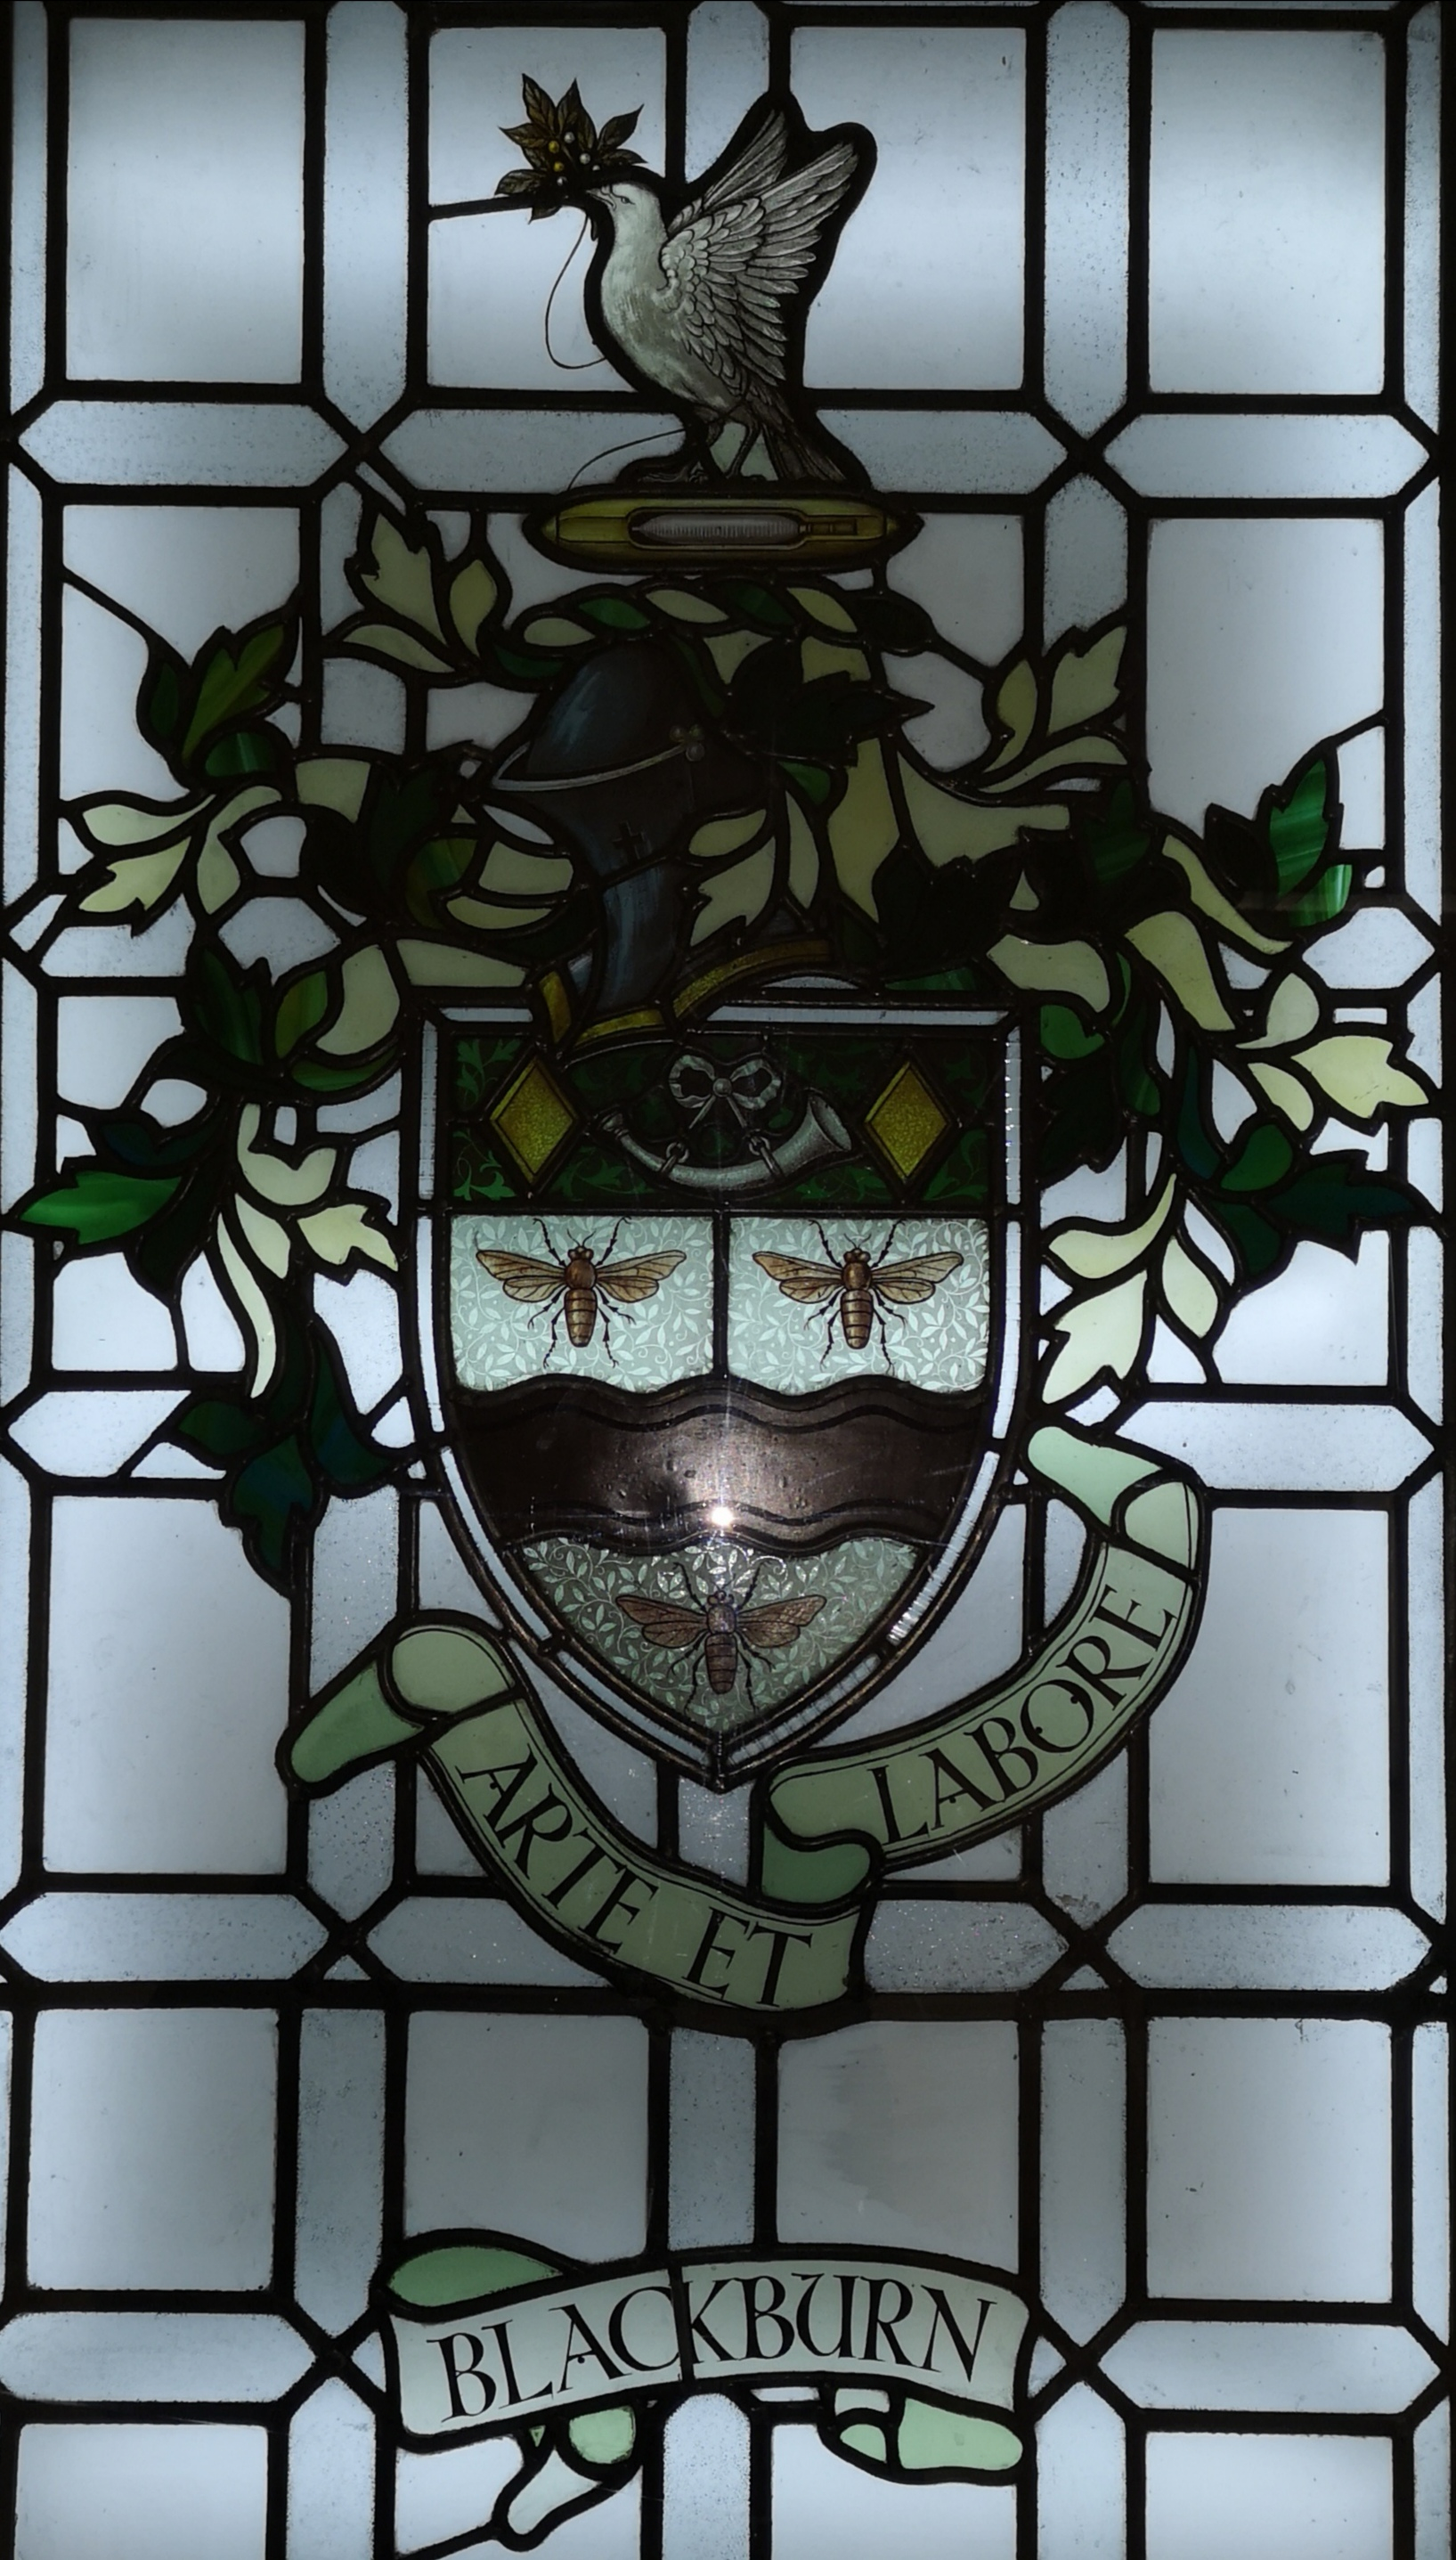 Blackburn coat of arms